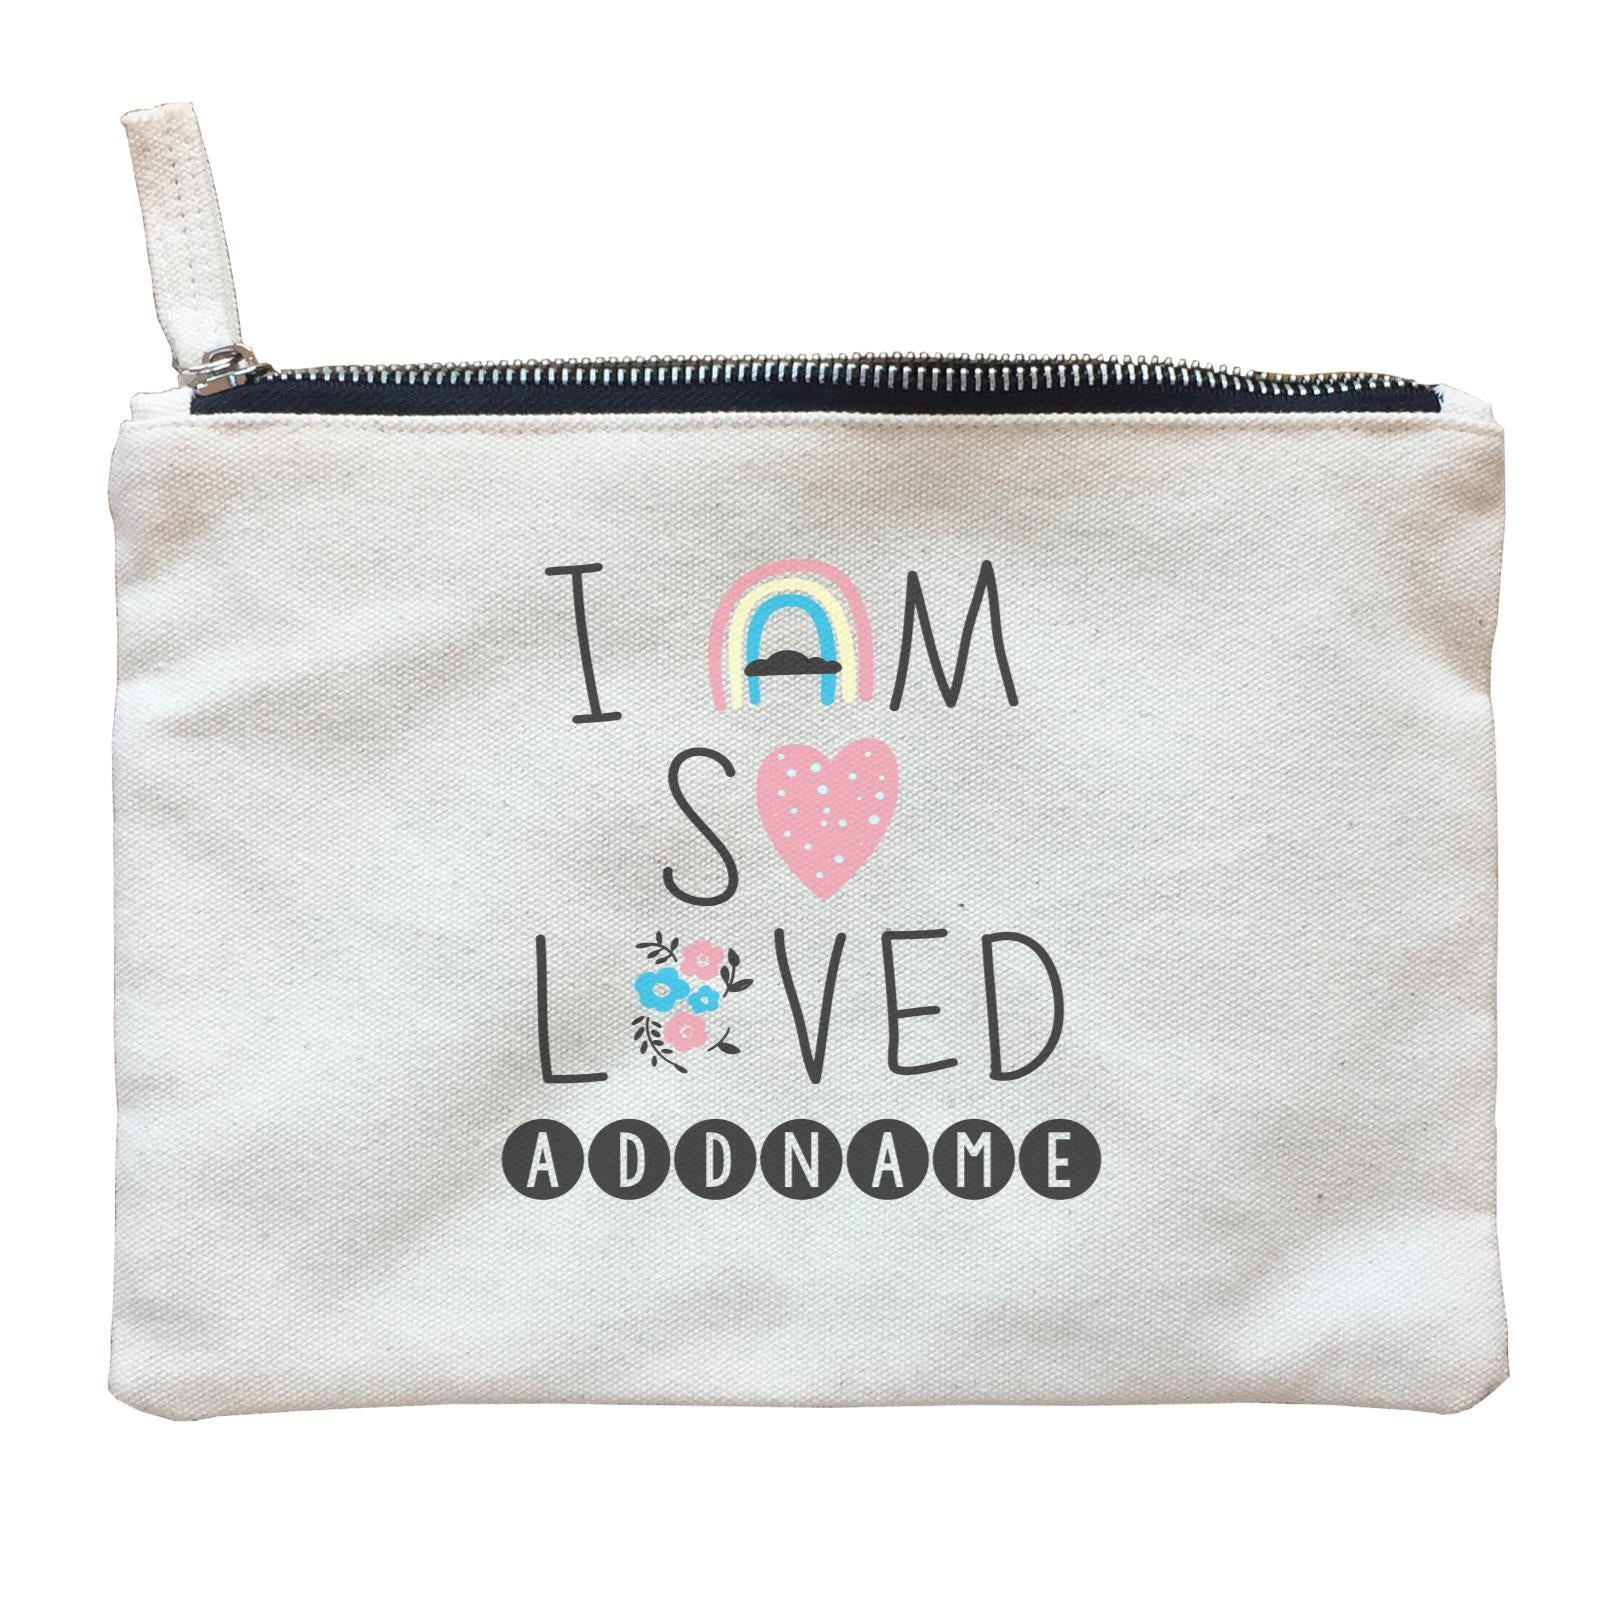 Children's Day Gift Series I Am So Loved Addname  Zipper Pouch